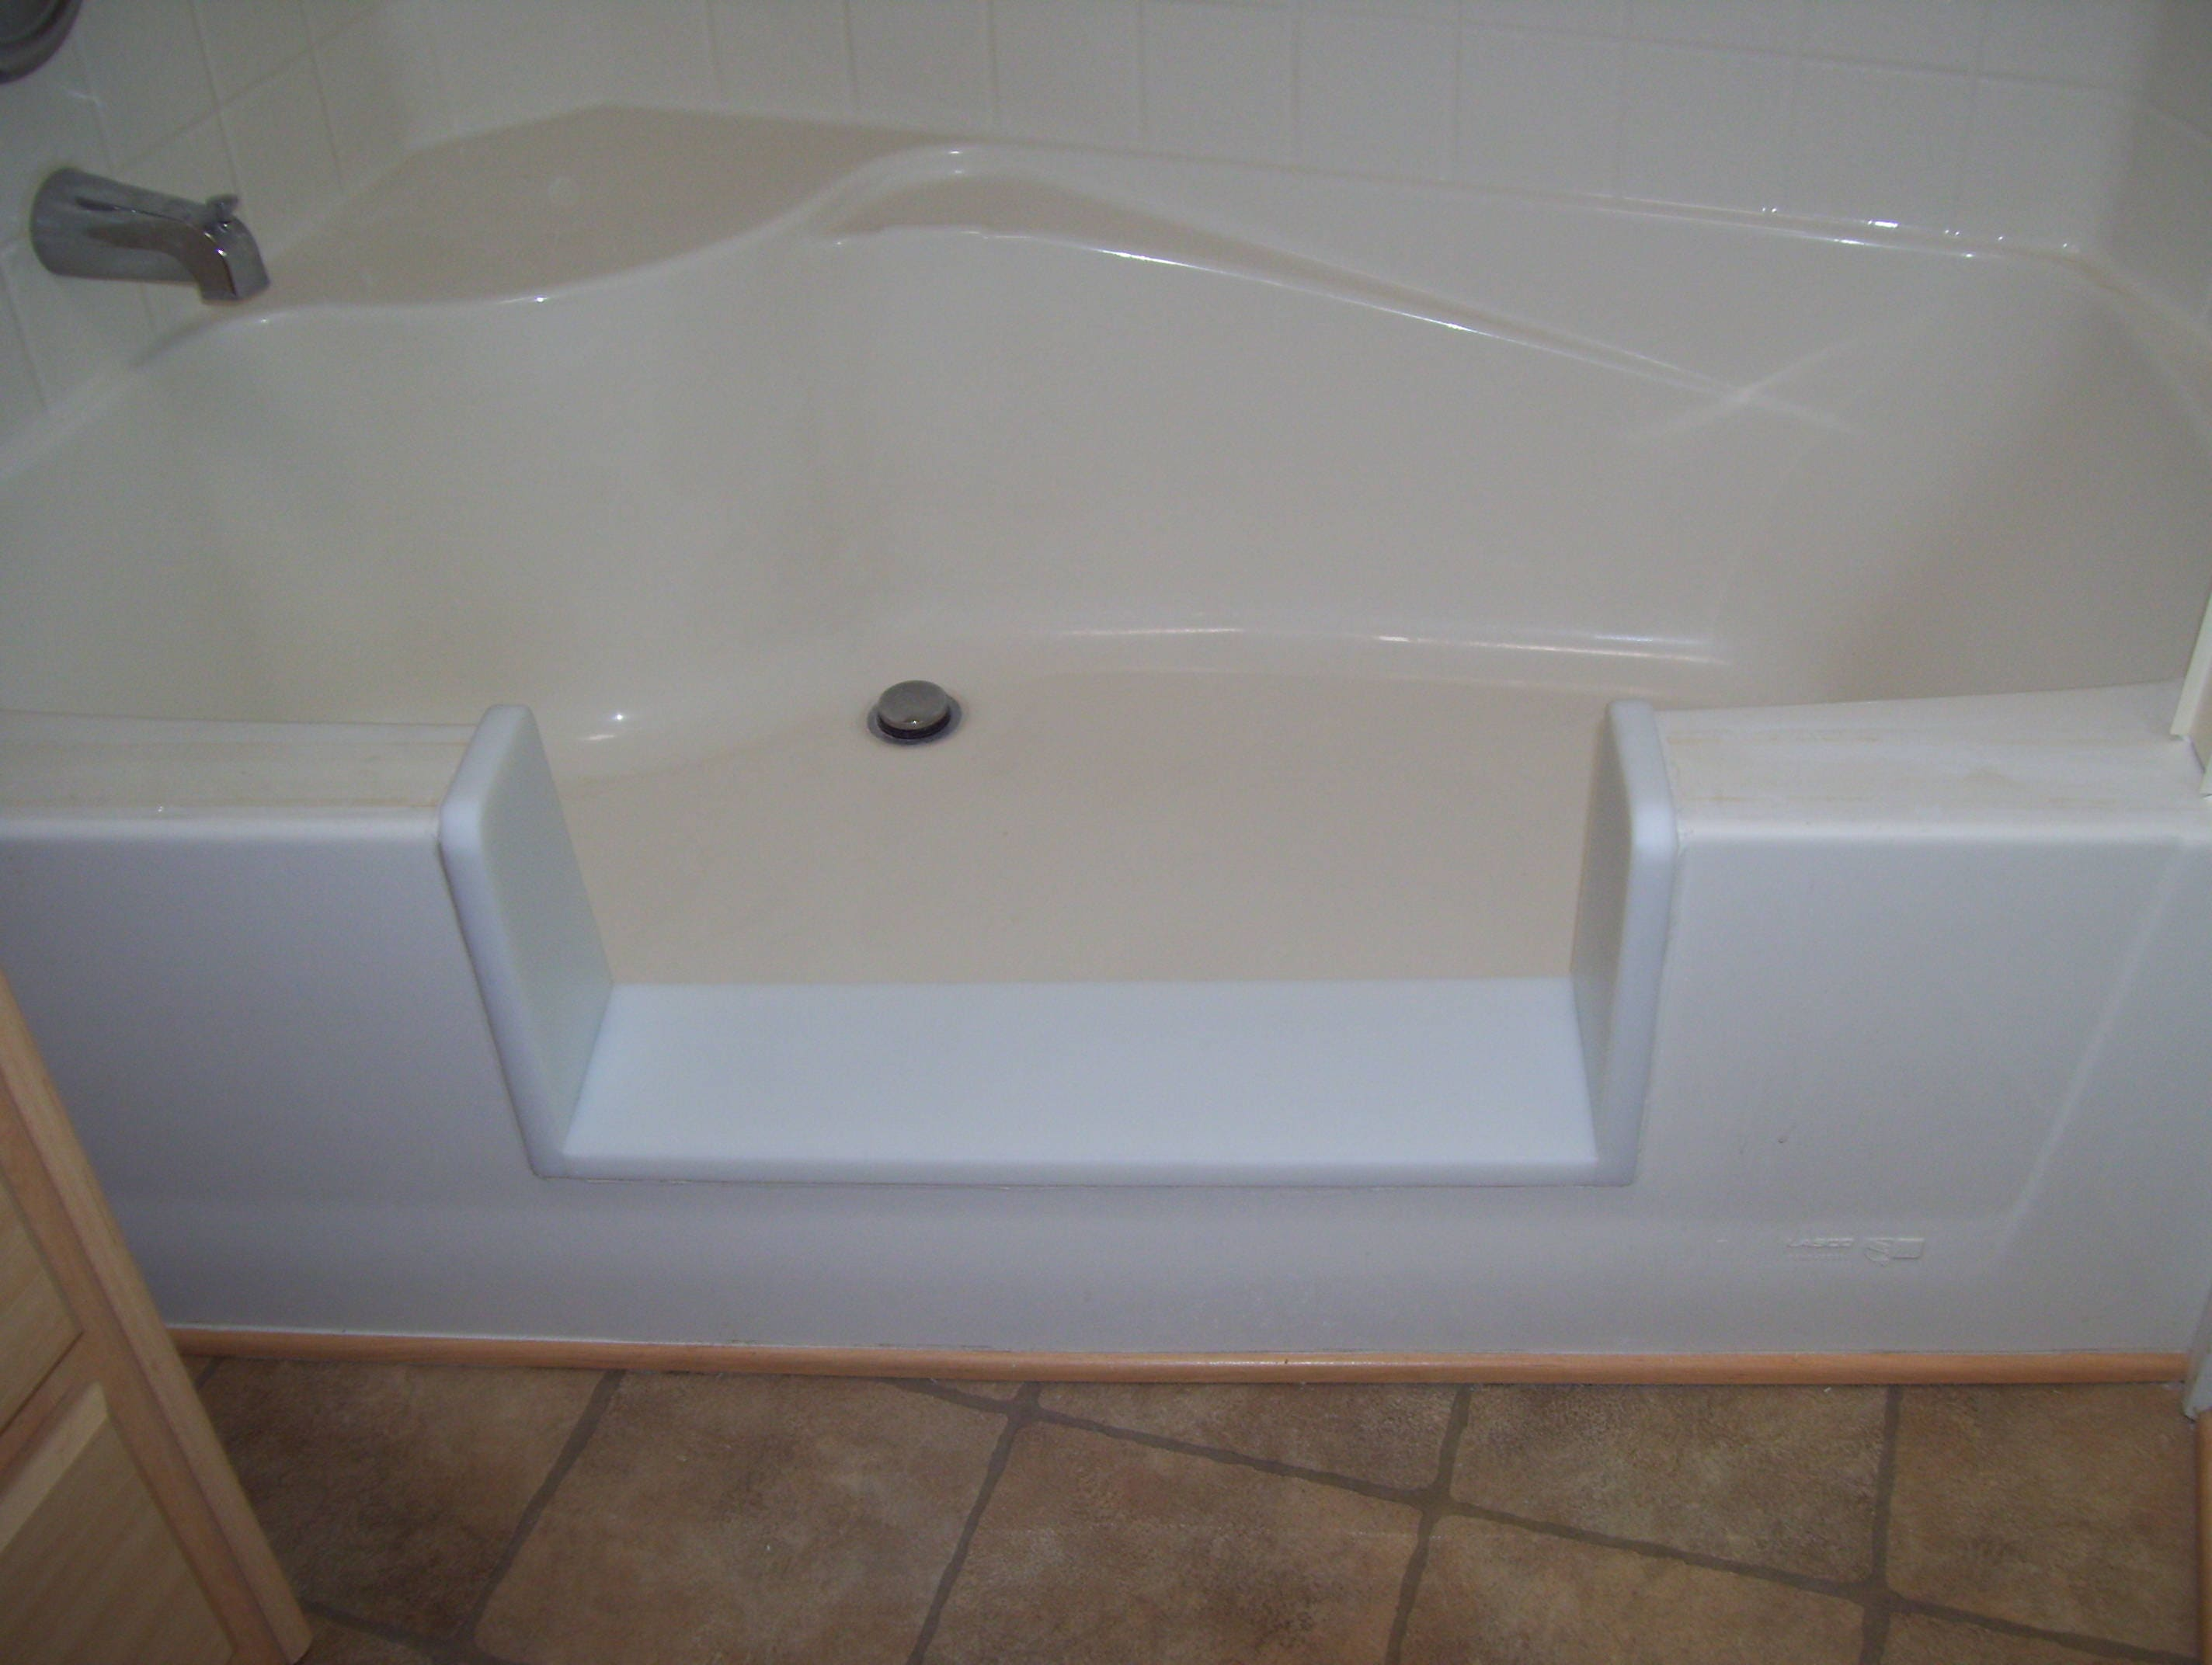 Custom Garden Tub Bathtub To Walk In Shower Conversion Kit